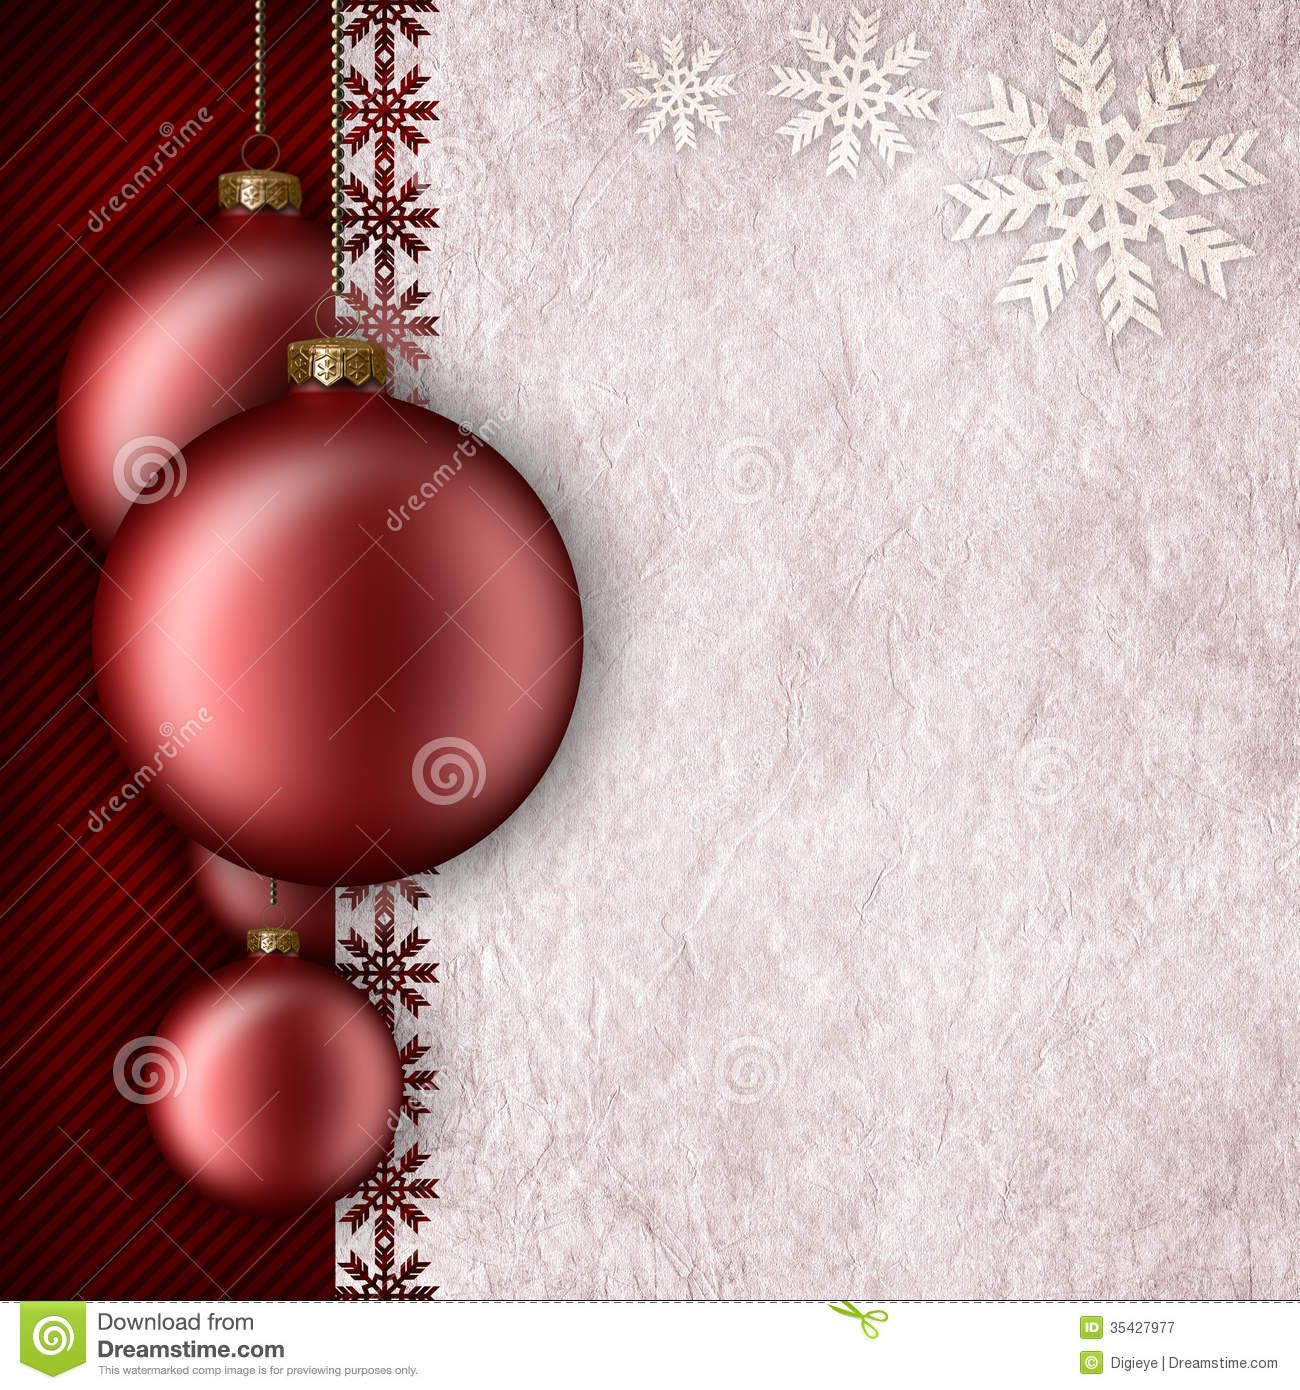 Superb Photo About Christmas Background Template   Baubles And Blank Space For  Text   35427977 Within Blank Christmas Templates